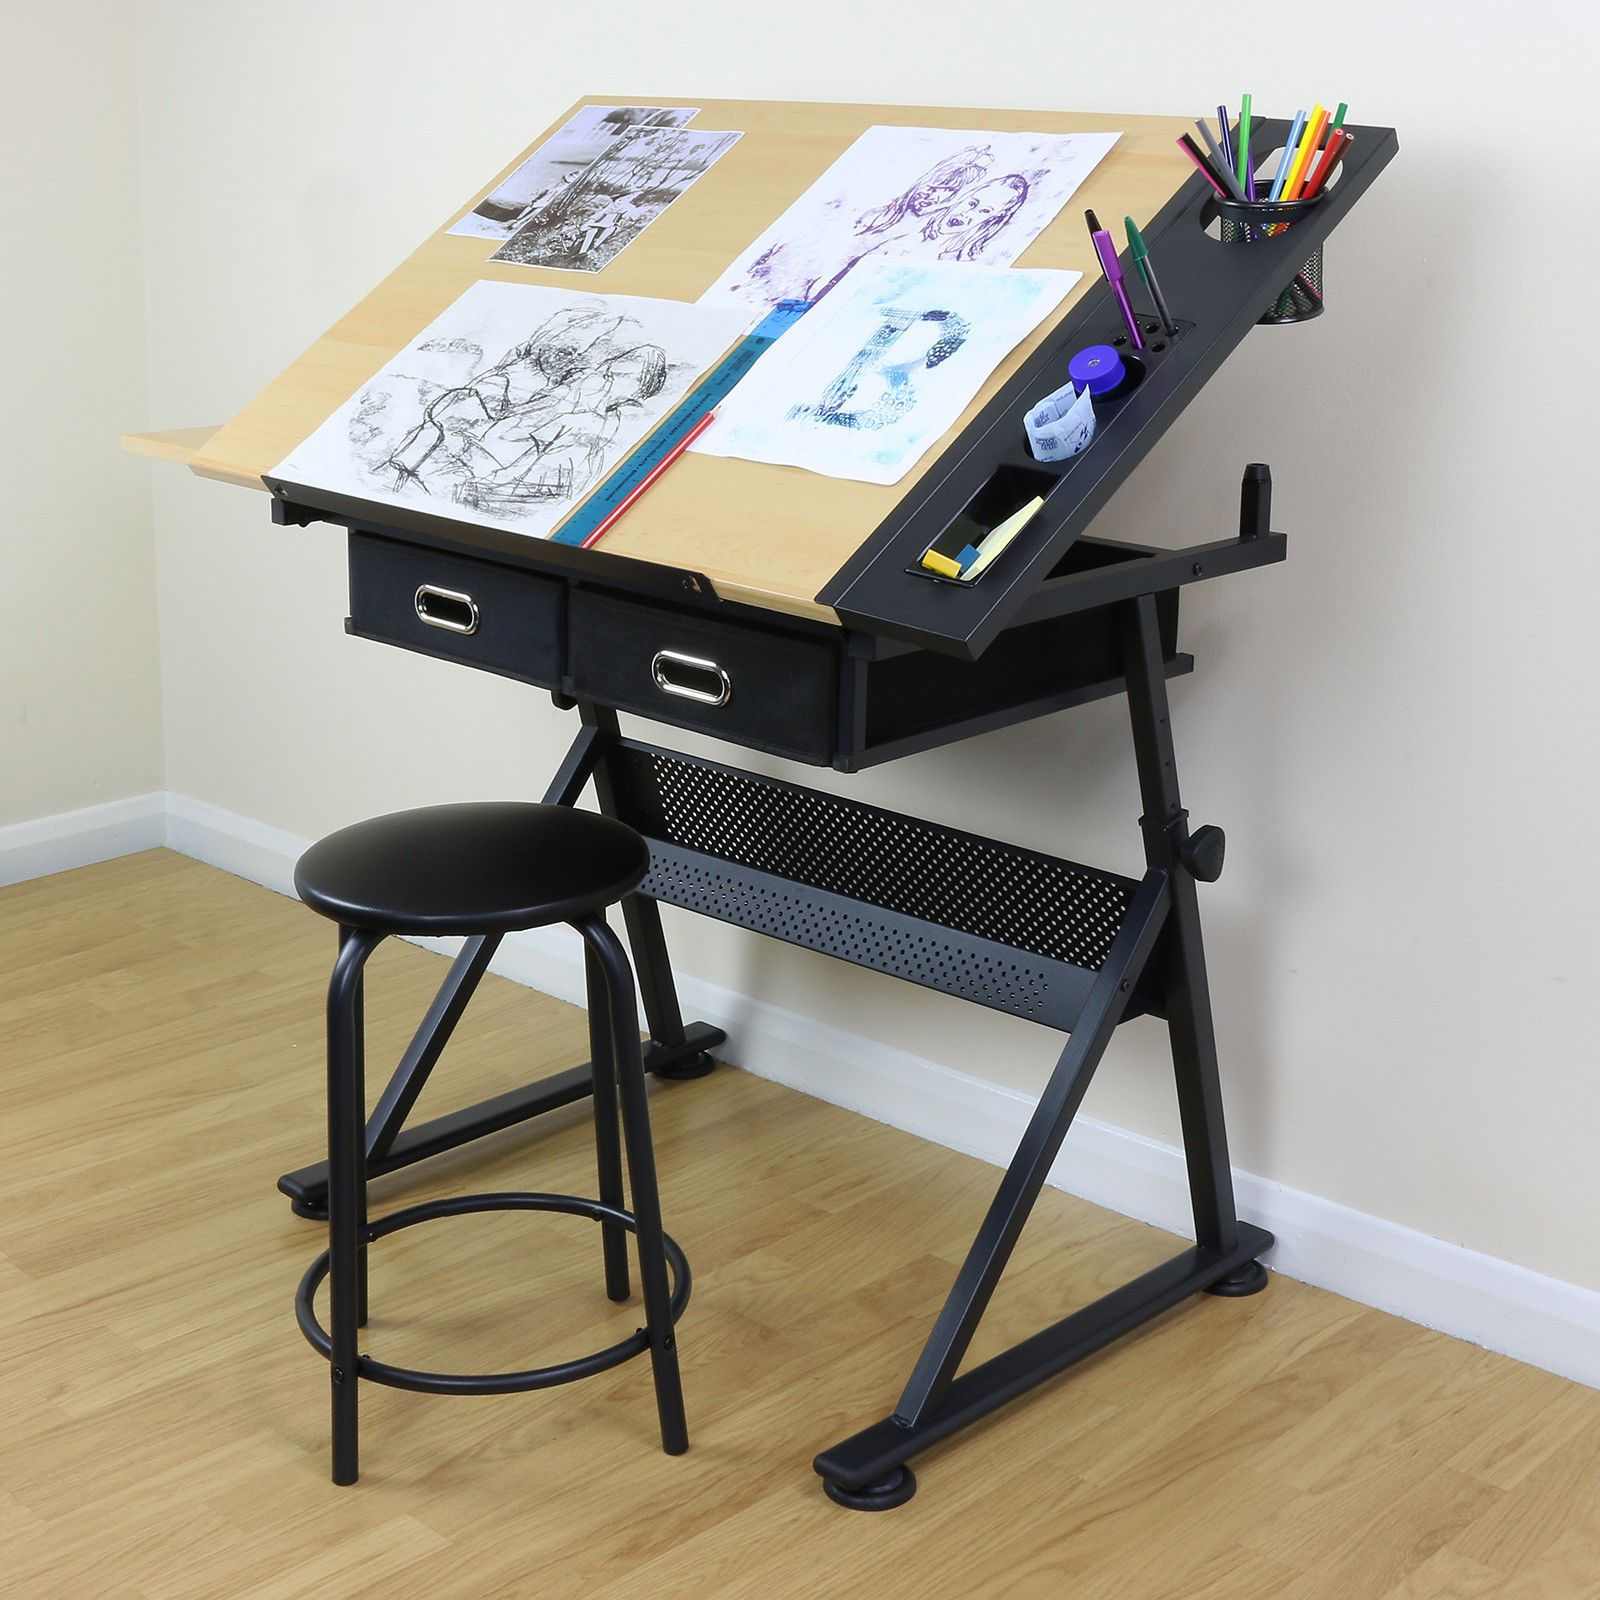 Adjustable Drawing Board Drafting Table With Stool Craft Architect